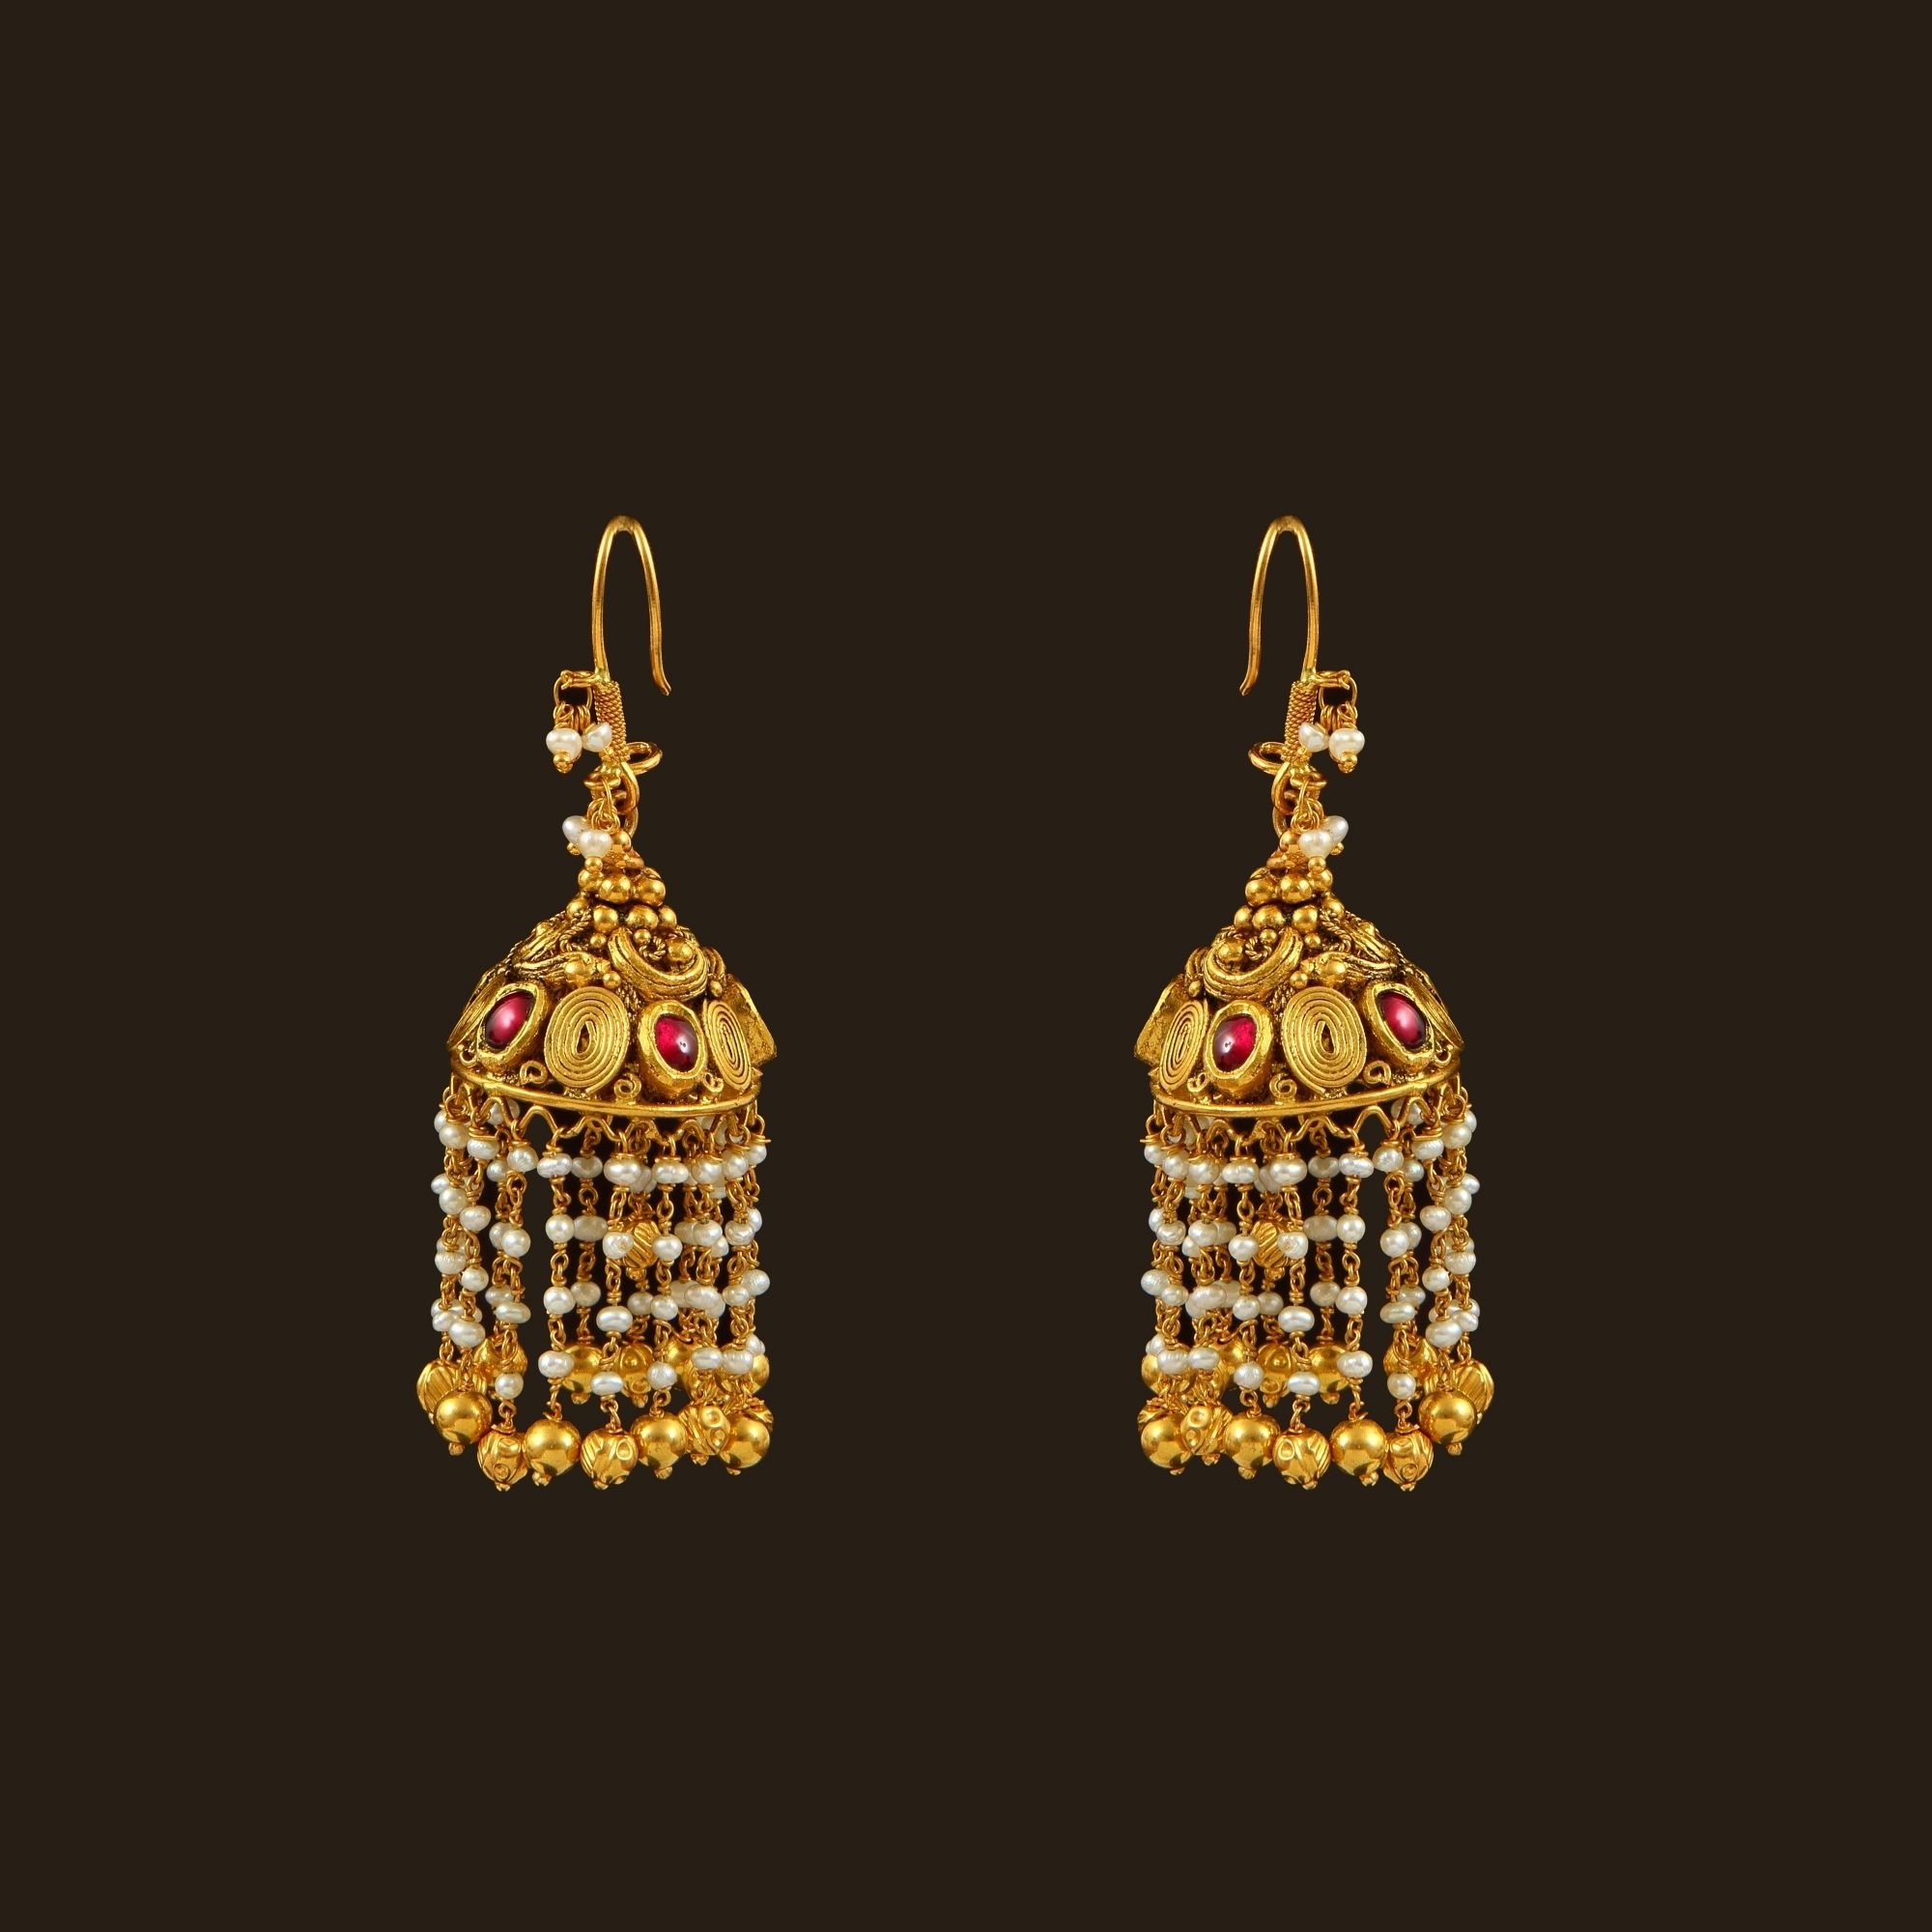 South Indian Jewellery Designs For Brides To Look Drop: Gold Pearls Hook Drops (108A36240)